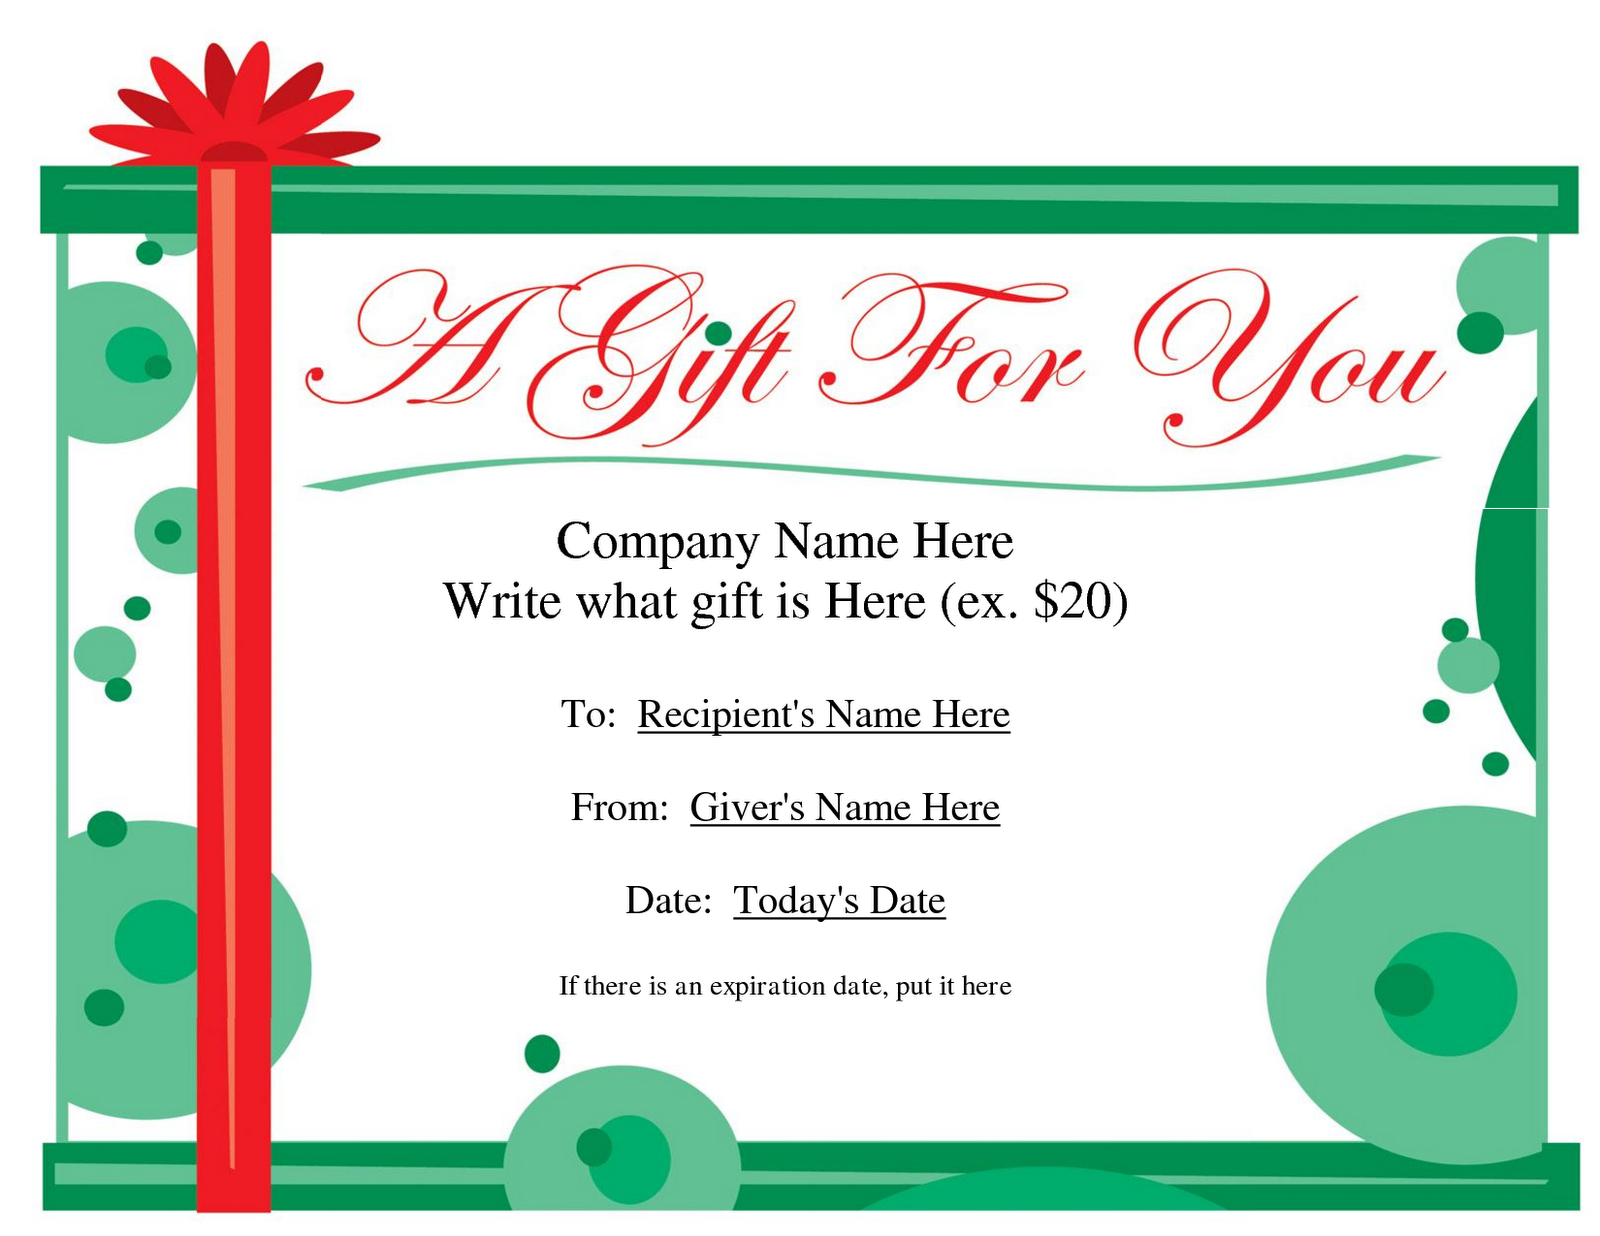 Printable Blank Gift Certificate Templates - Date night gift certificate templates